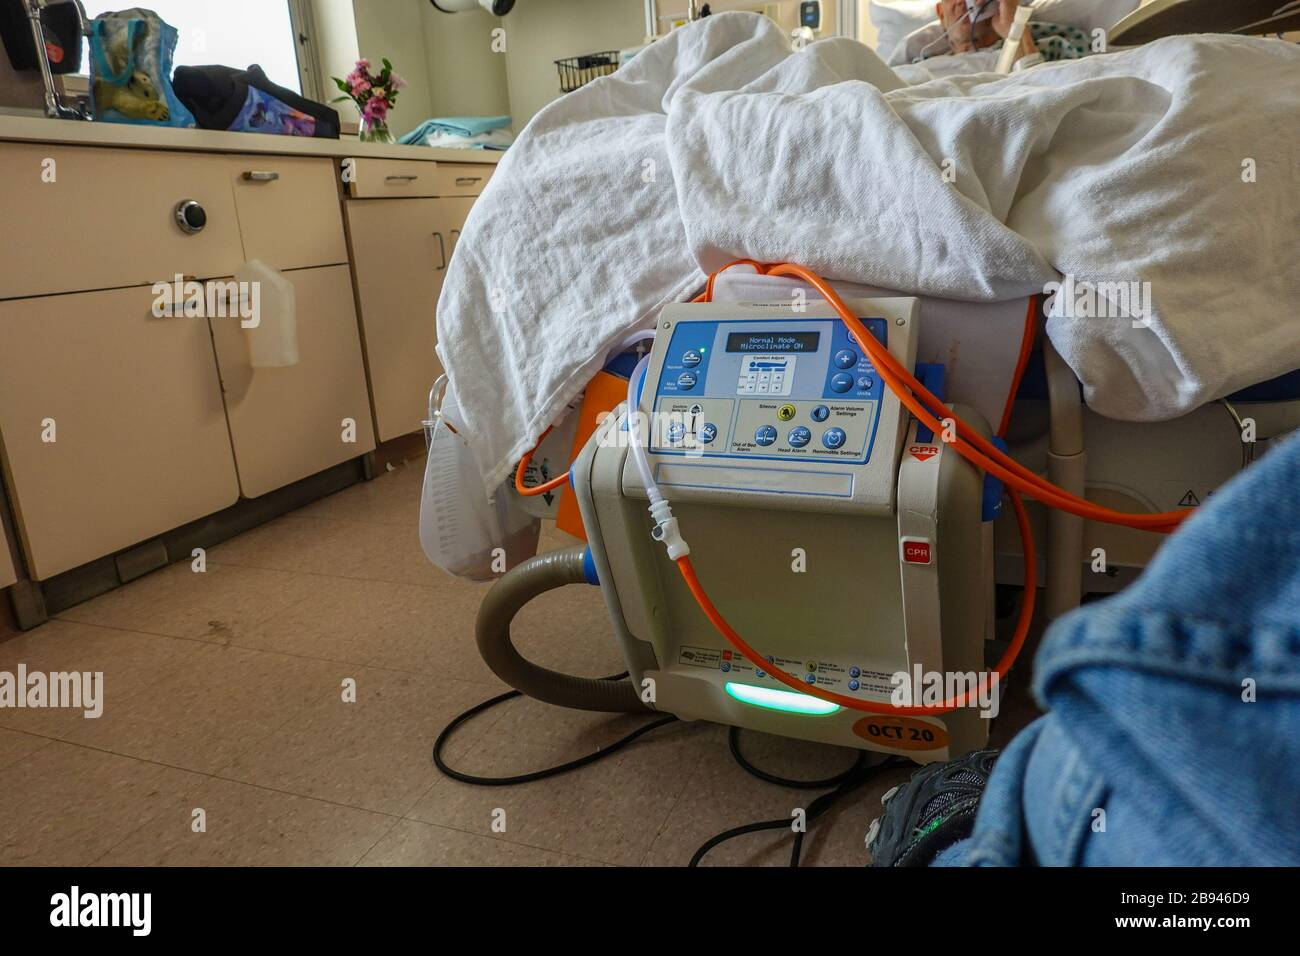 A patient seen in a hospital bed with tubes attached to a bed adjustment machine Stock Photo